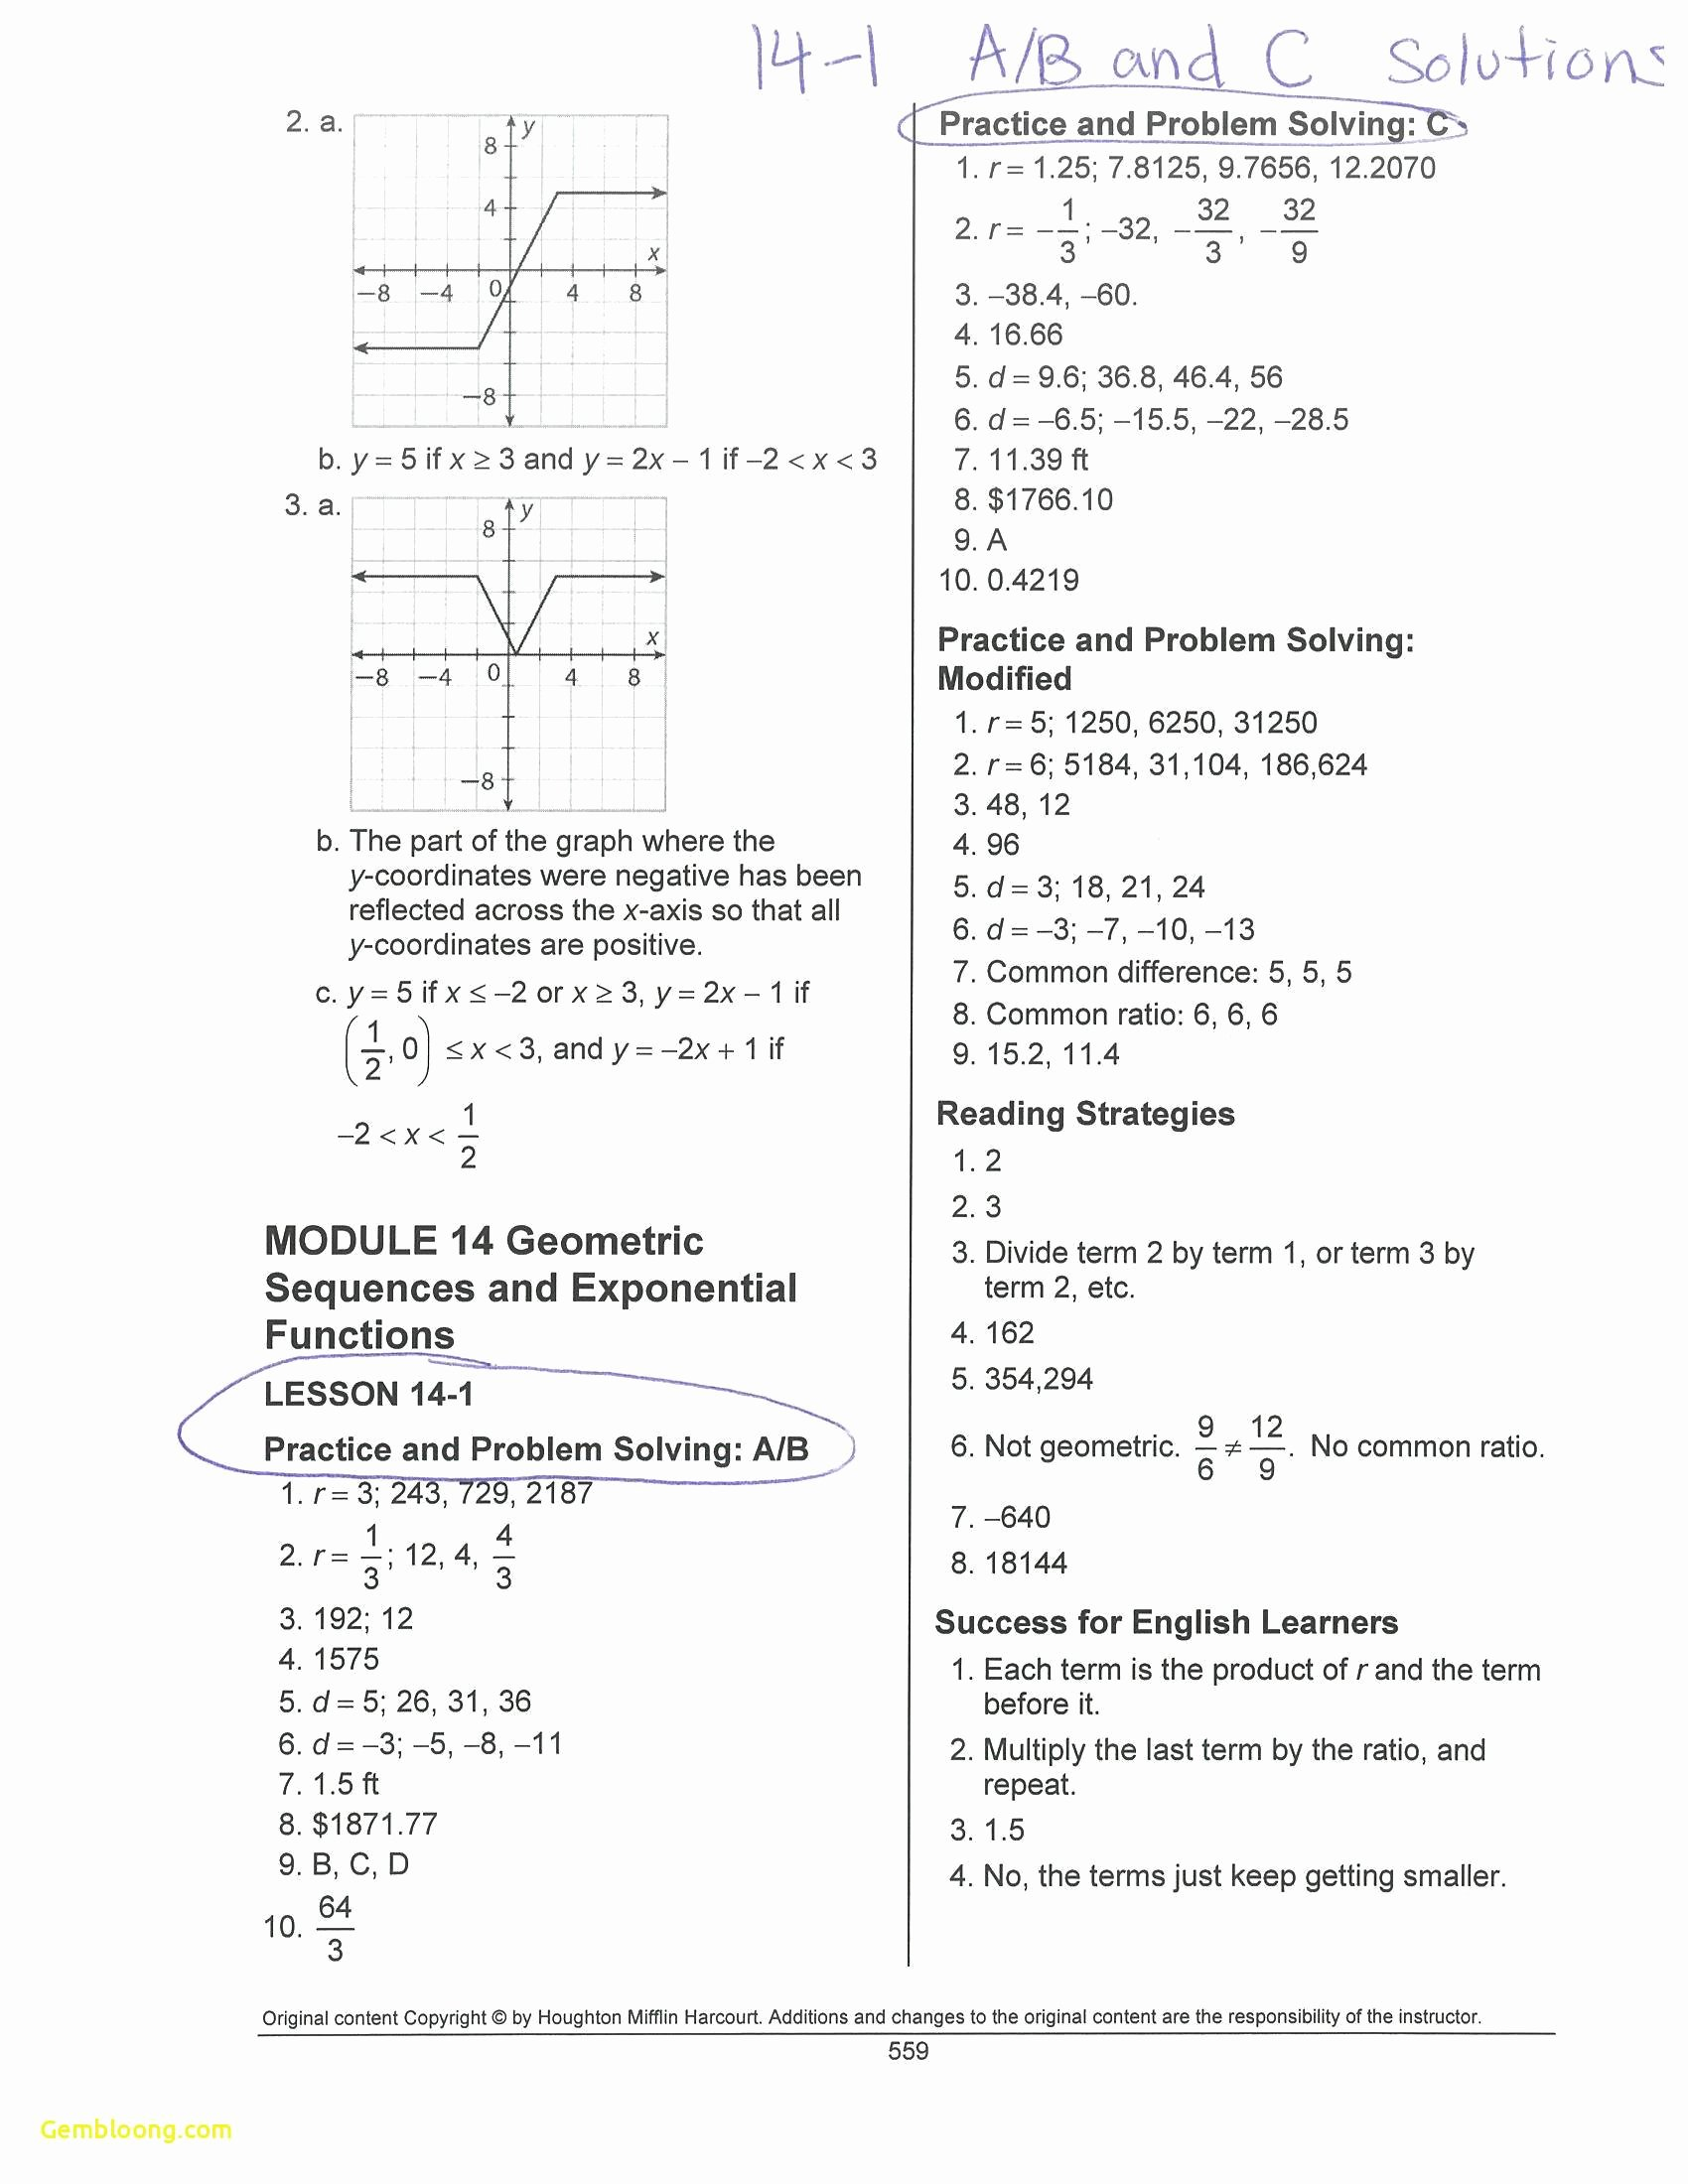 Piecewise Functions Worksheet with Answers Awesome Piecewise Functions Worksheet 1 Answers